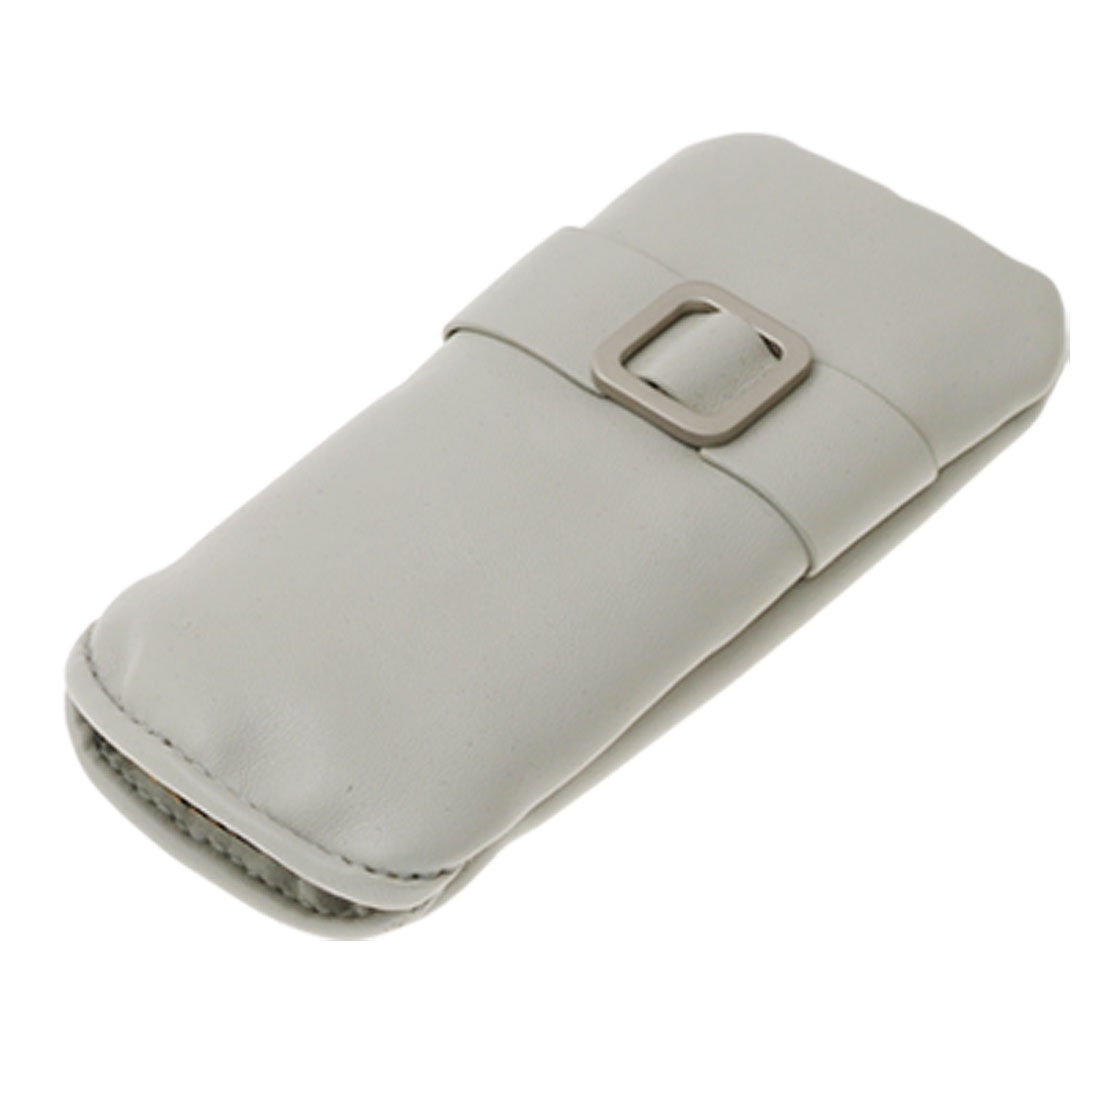 Gray Faux Leather Soft Sleeve Pouch Bag for Nokia 5130